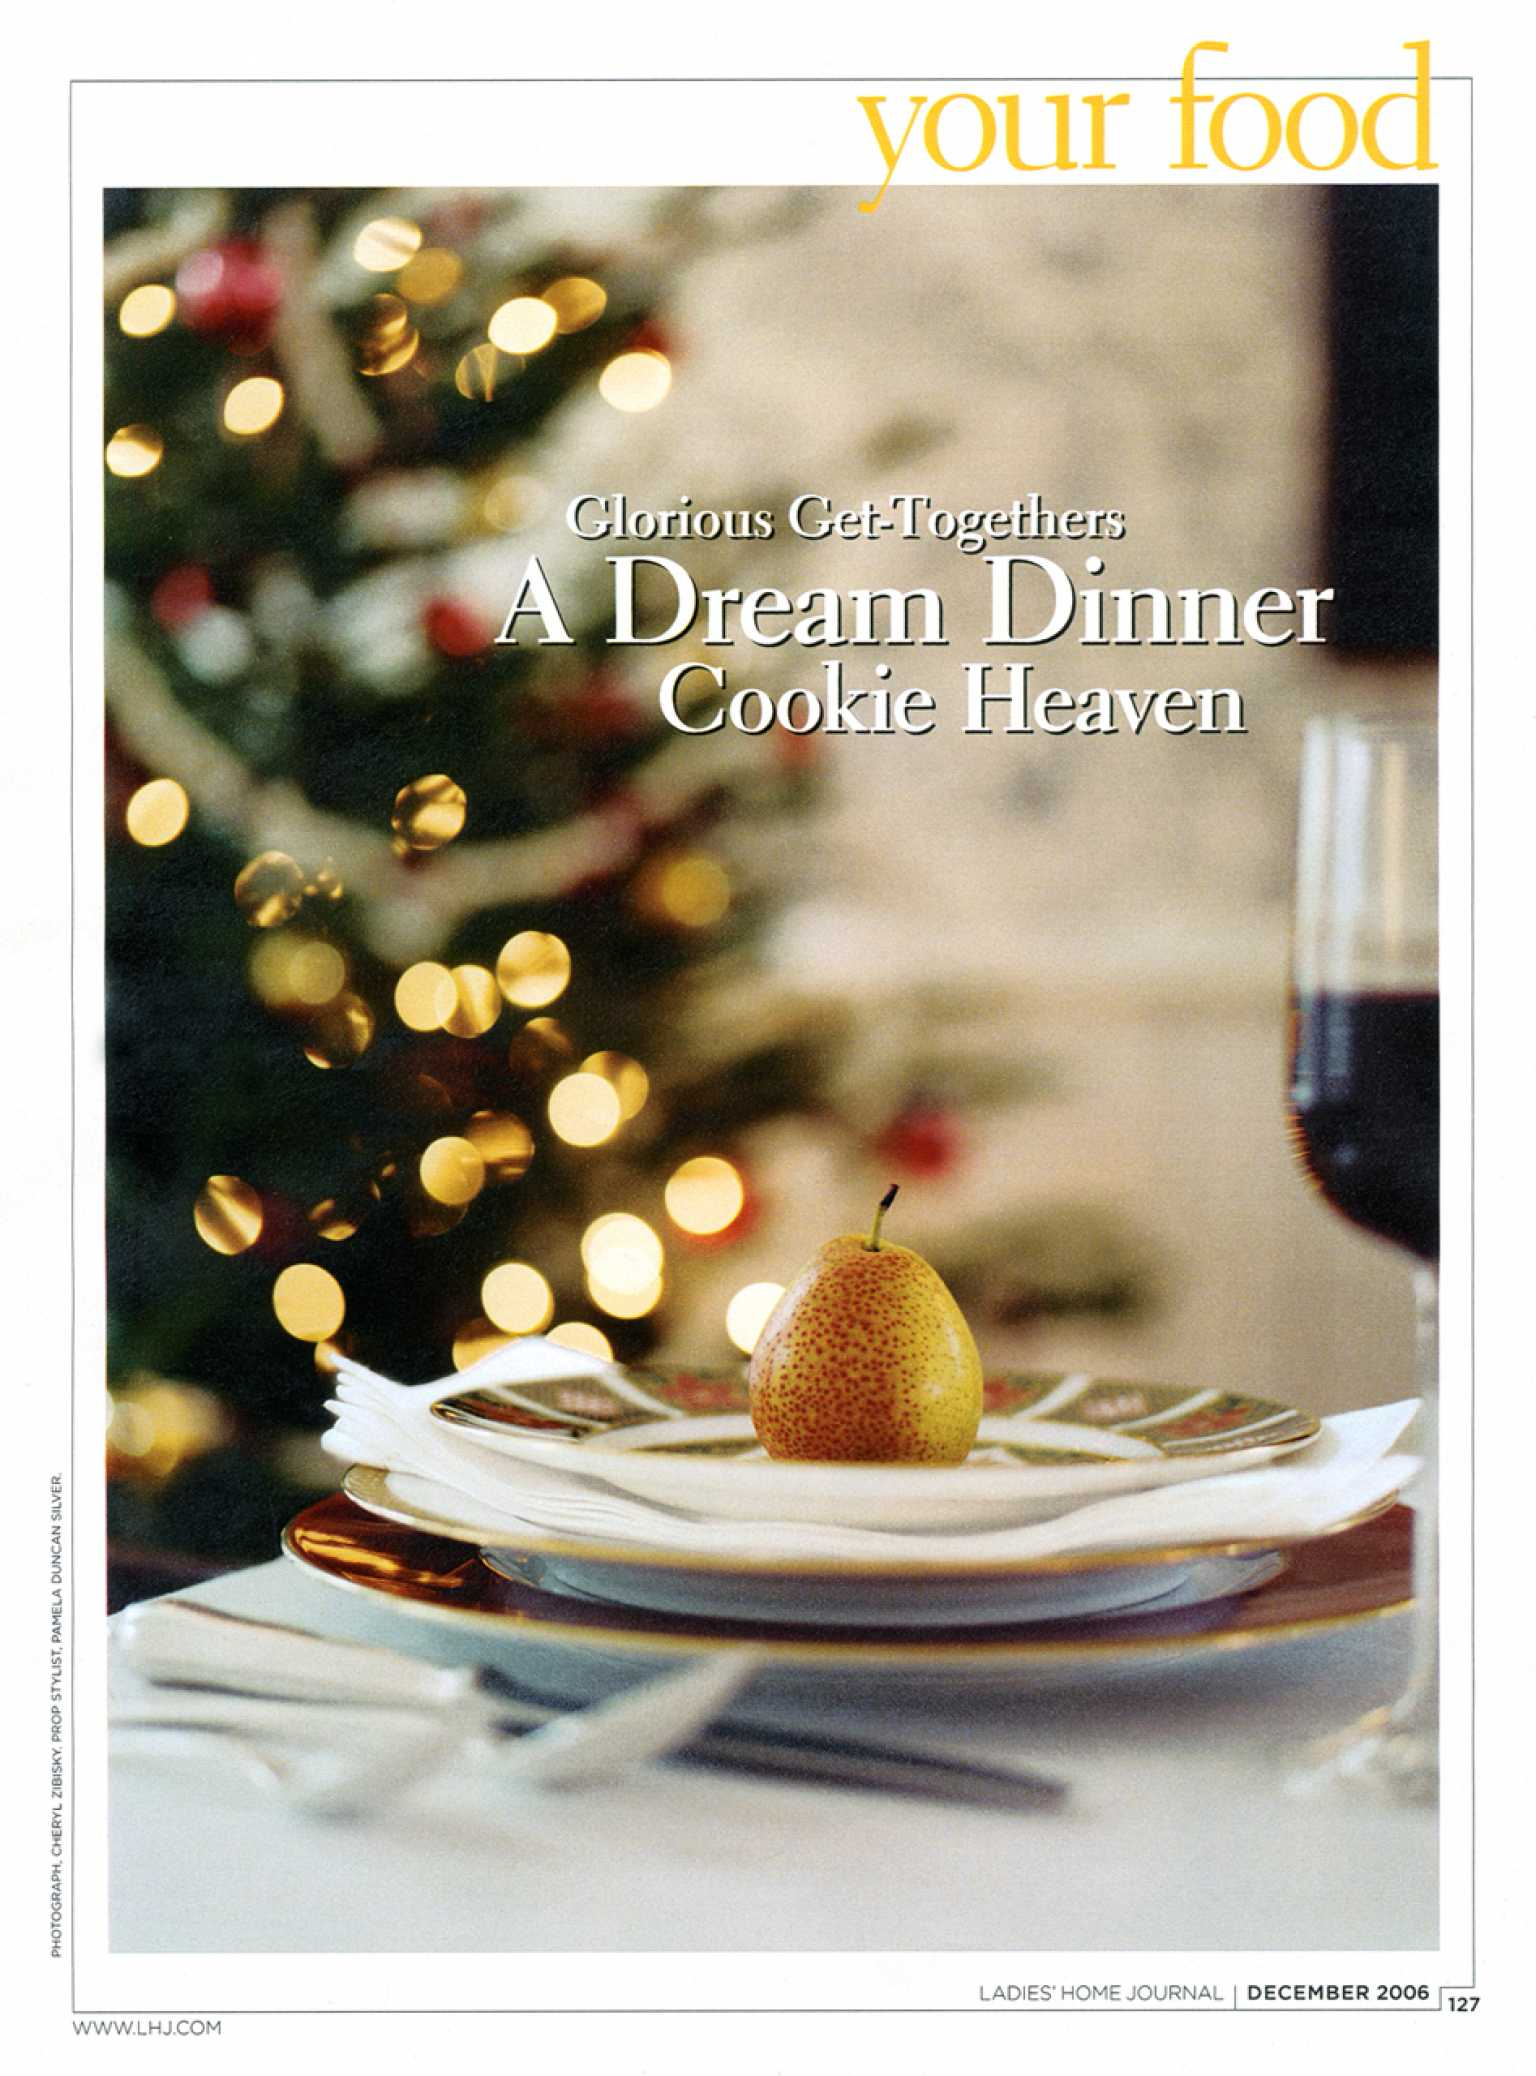 Ladies Home Journal Food Feature